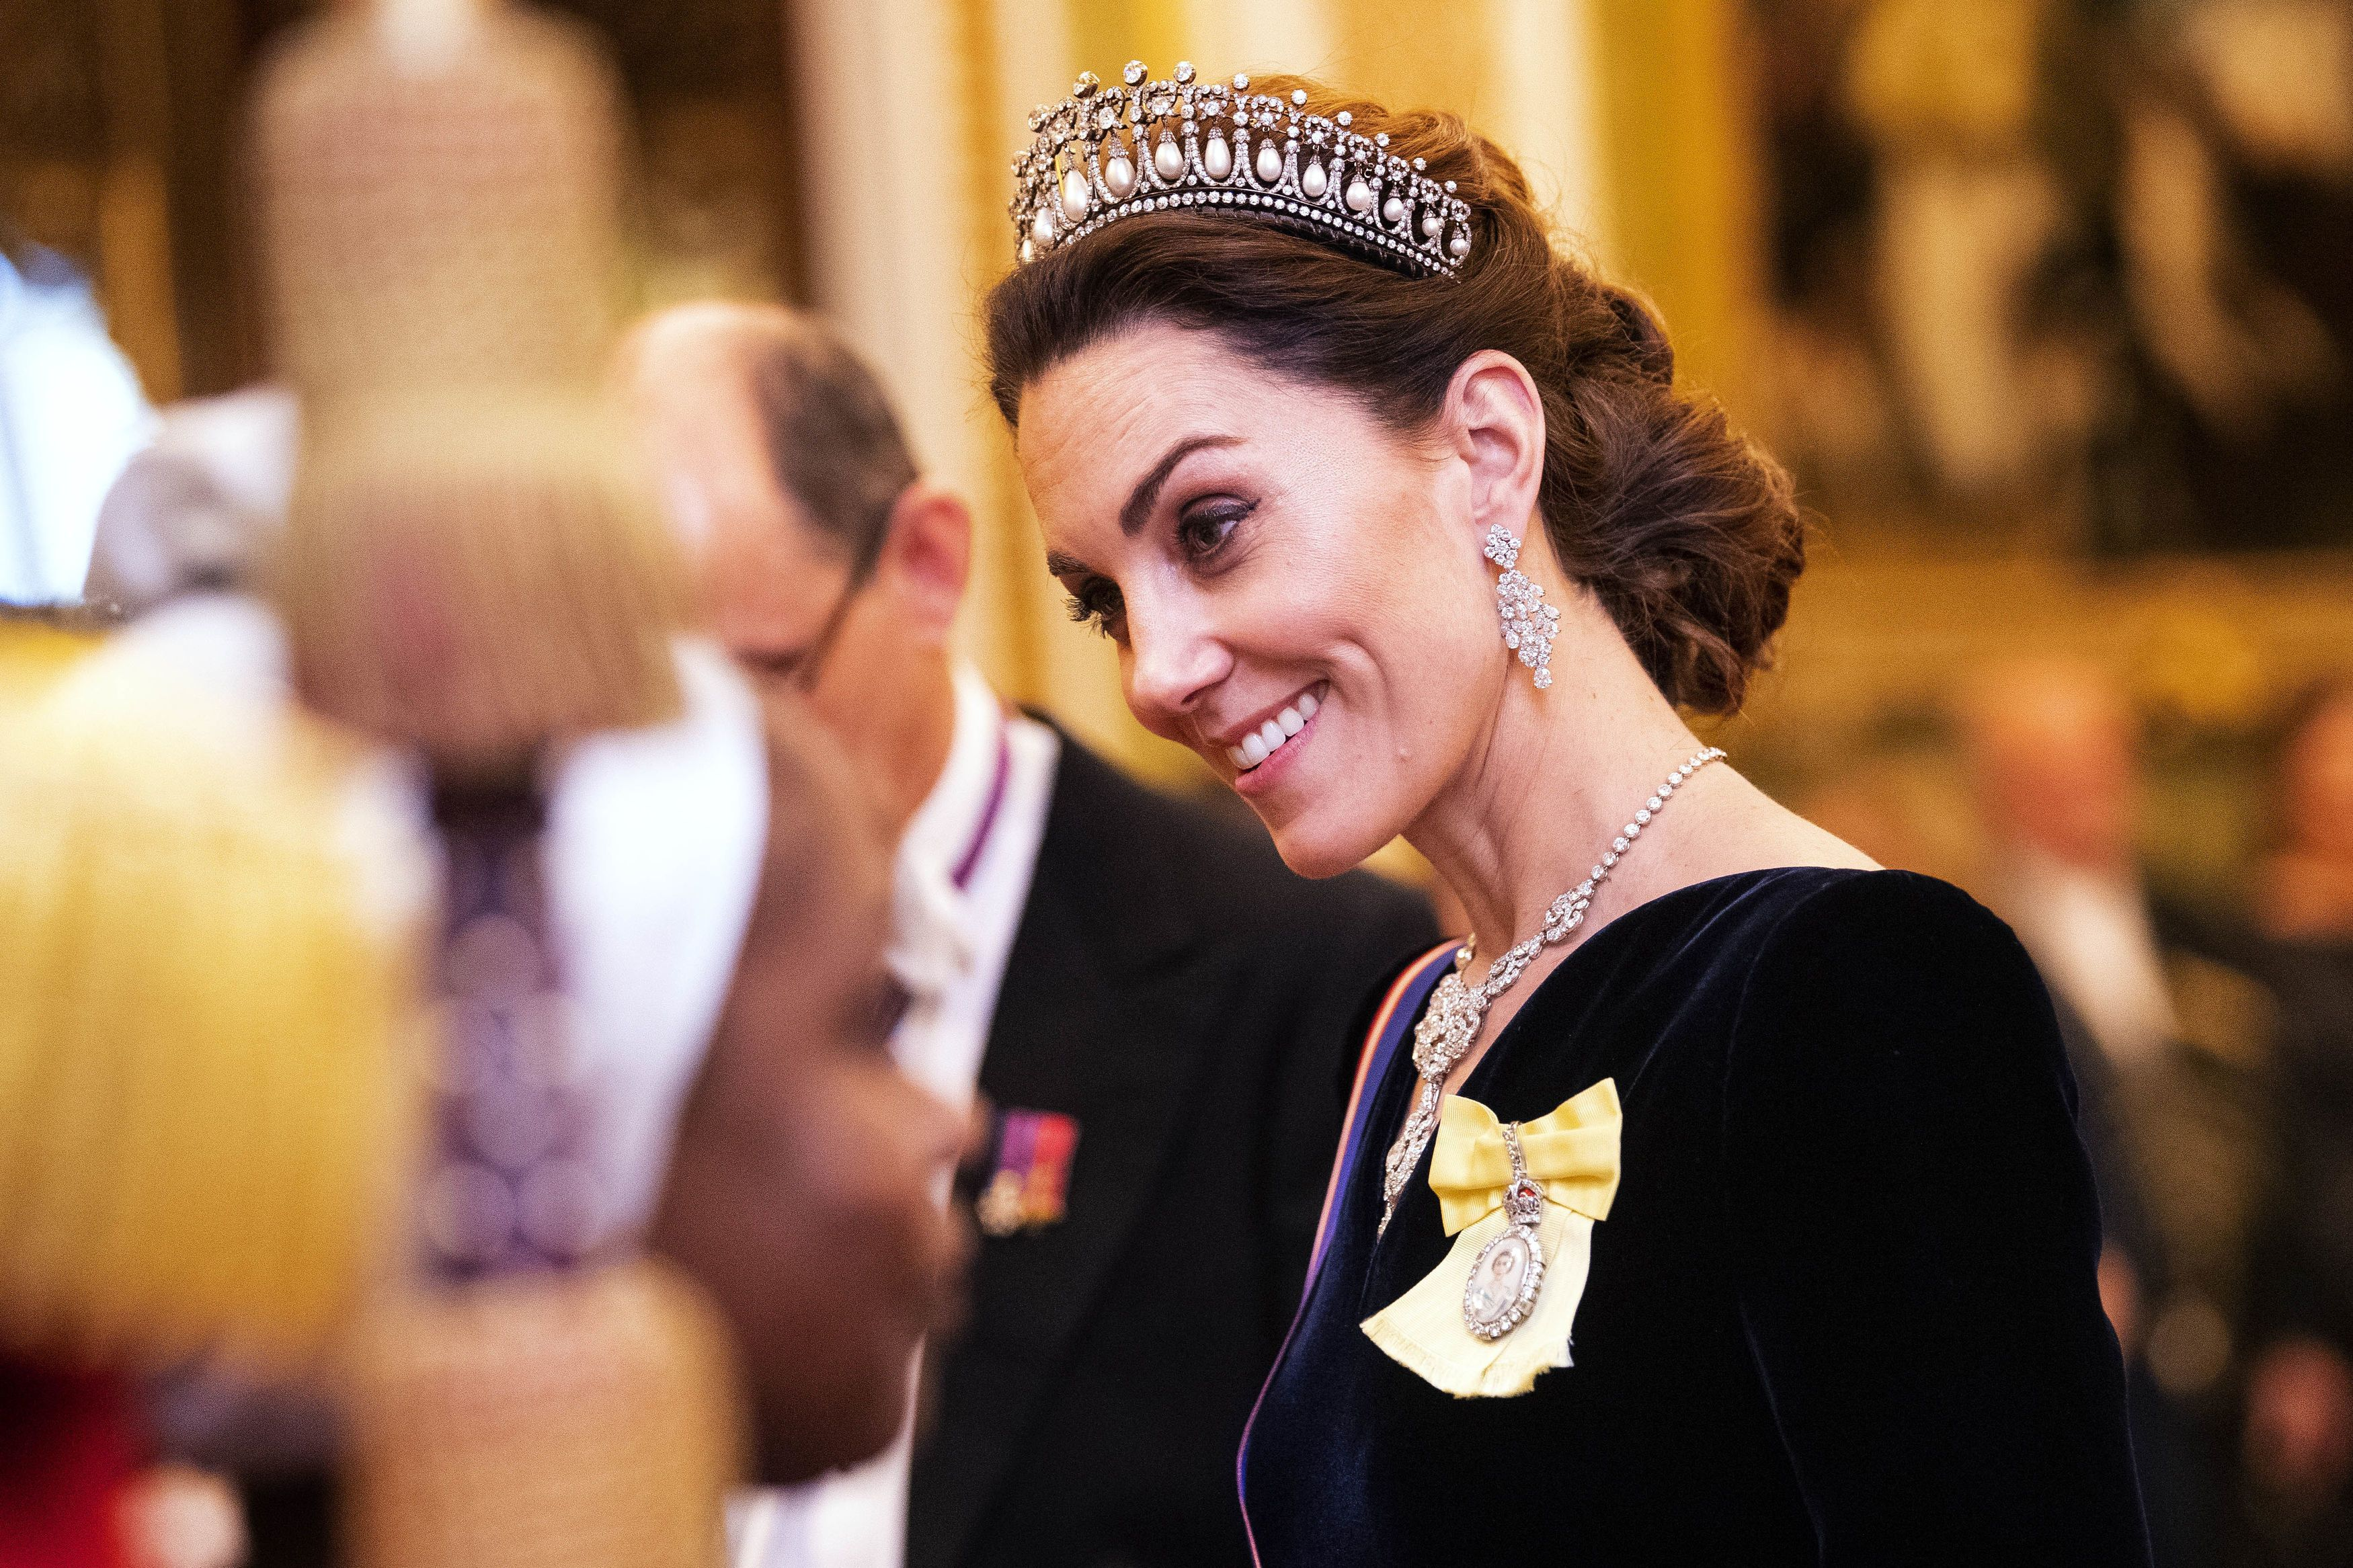 Kate Middleton Just Debuted a Gorgeous New Diamond Ring at the Diplomatic Reception